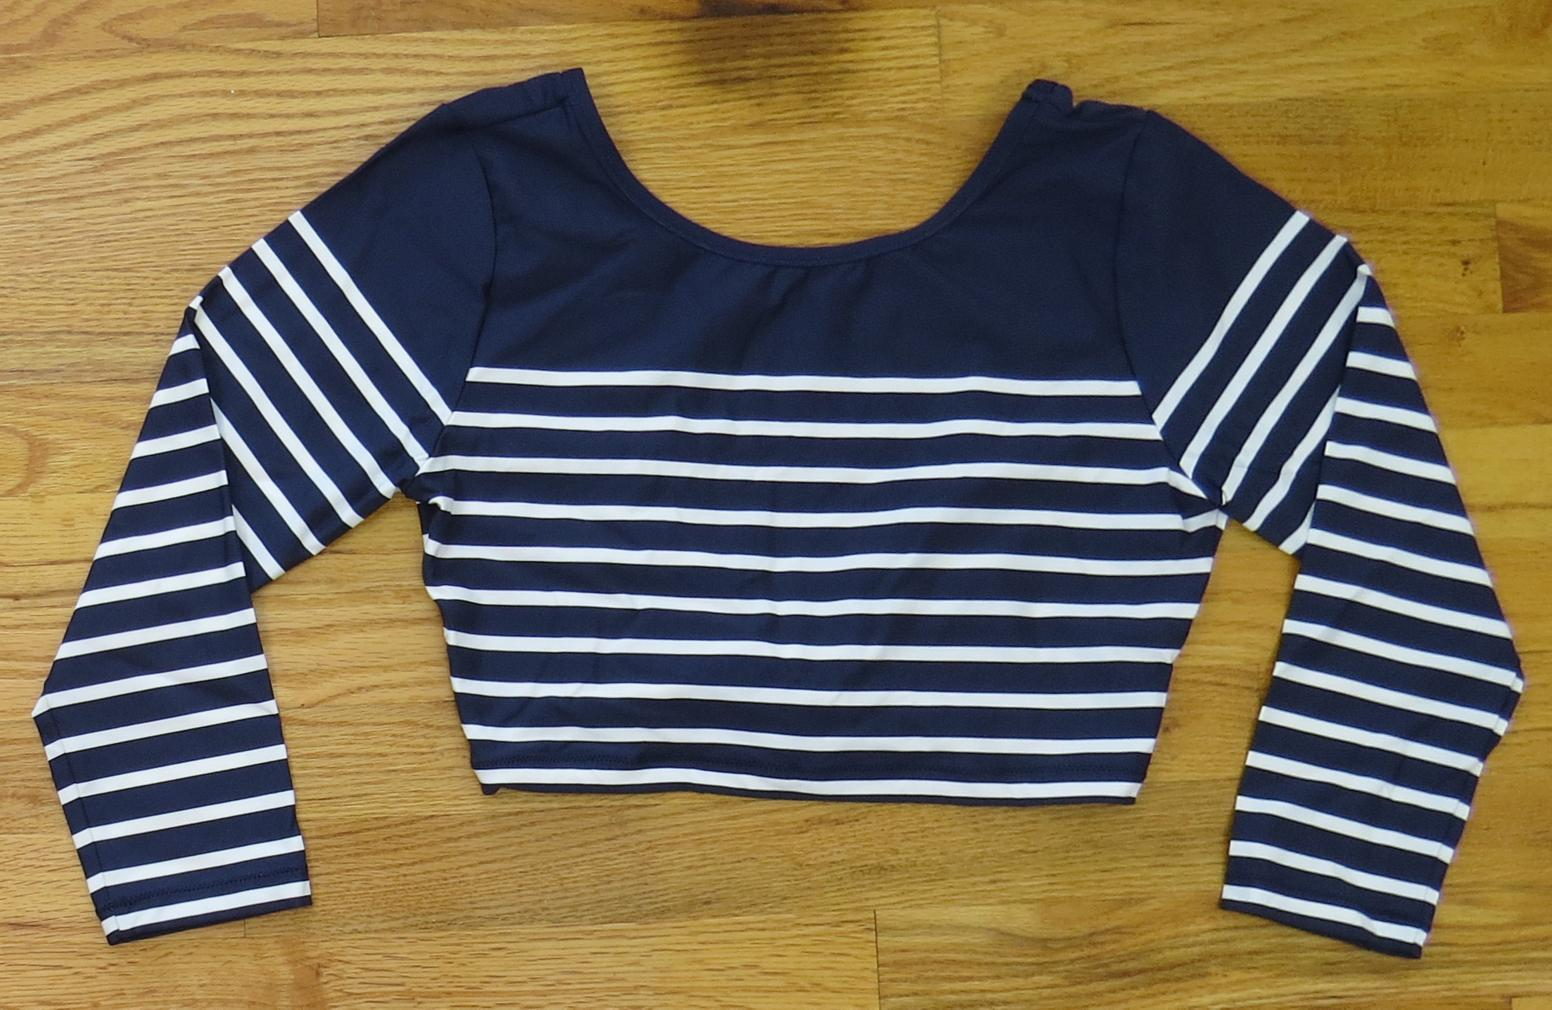 28f6bda6d7 Details about JCrew Cropped Rash Guard Nautical Stripe Swim UPF H7624  88  Navy Ivory M